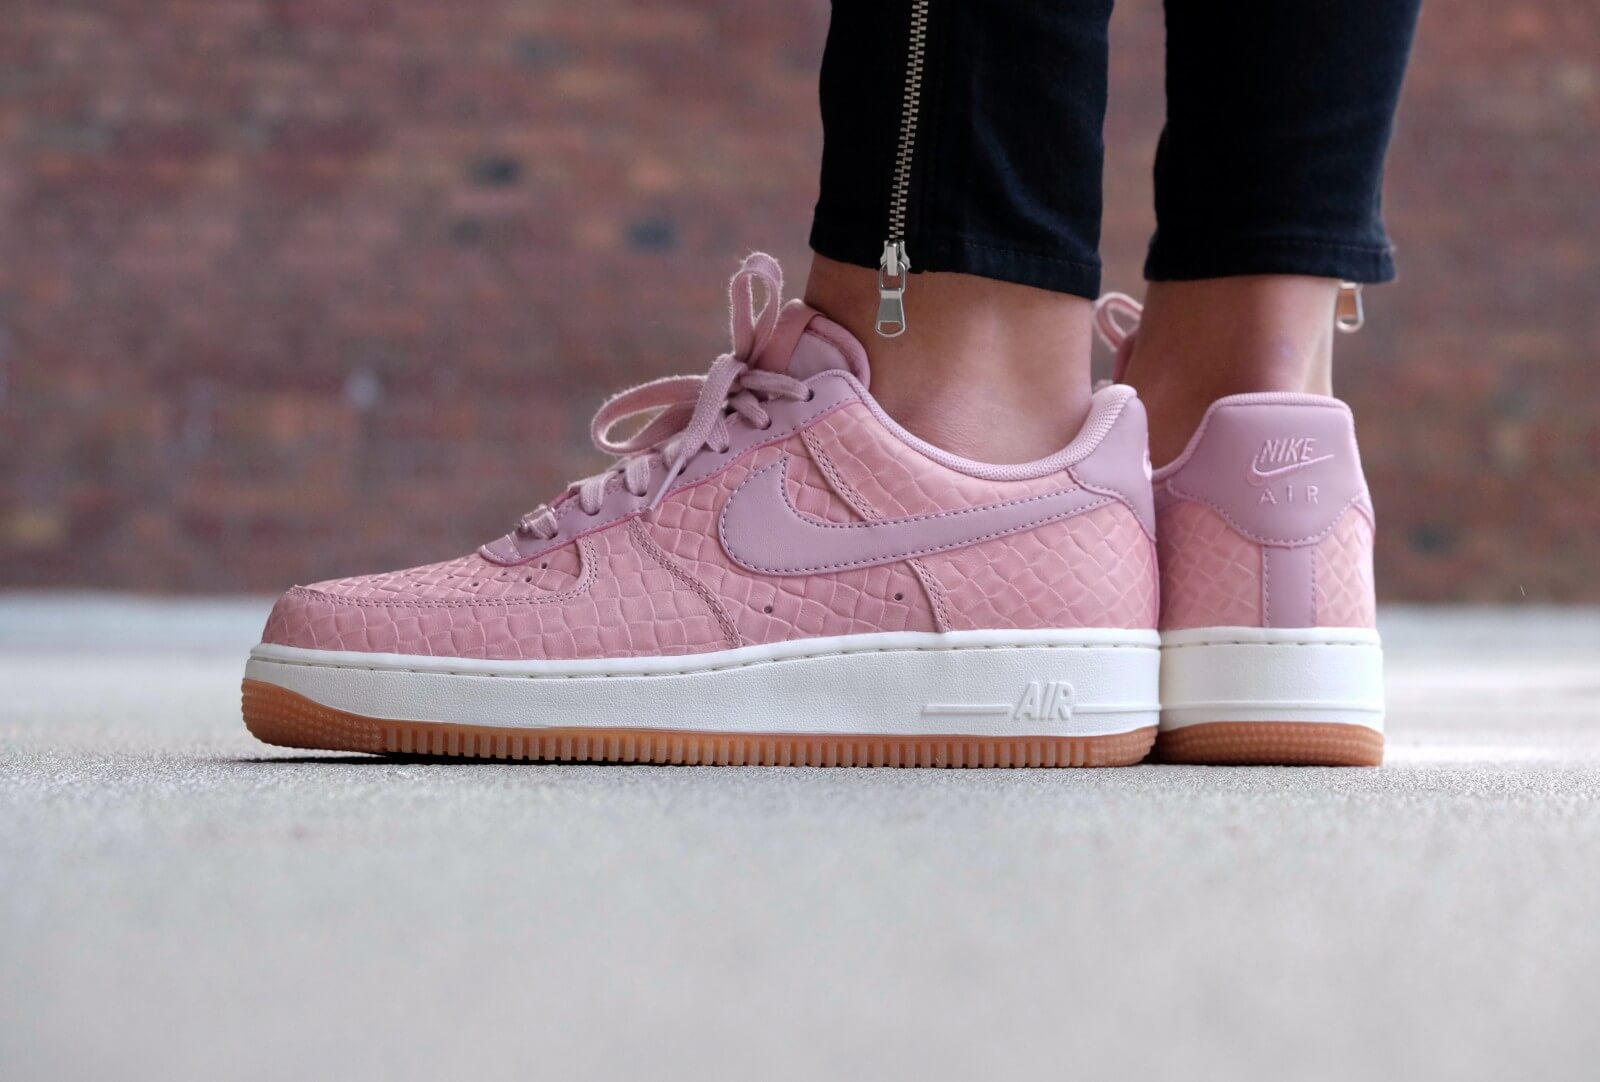 nike wmns air force 1 39 07 pink glaze pink glaze pink glaze. Black Bedroom Furniture Sets. Home Design Ideas